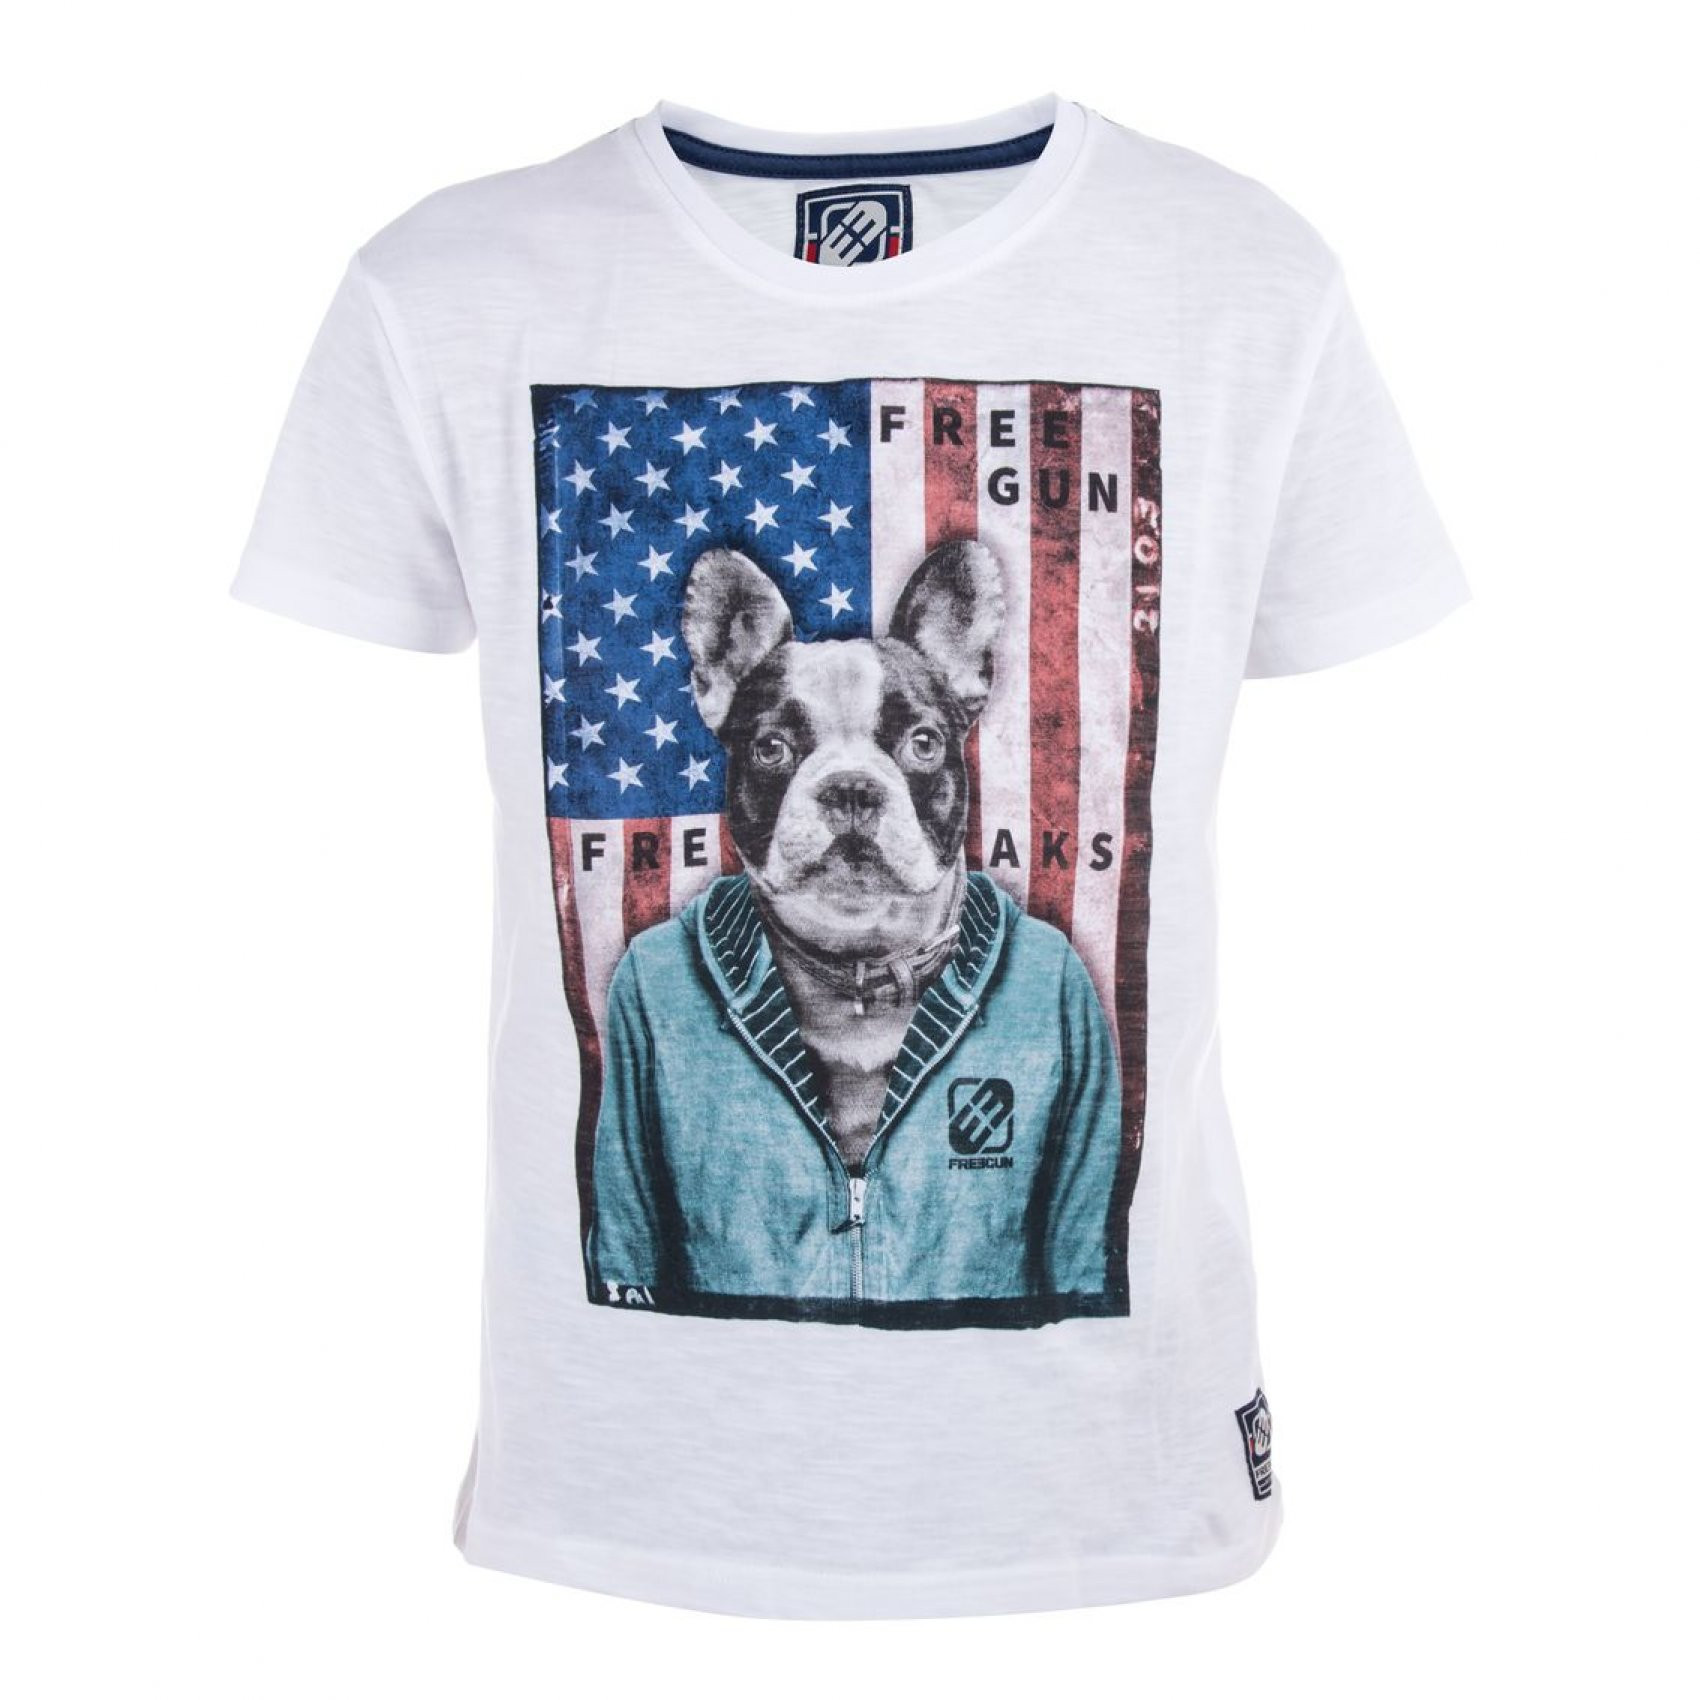 Tee shirt garçon babyz imprimé dog freegun. (photo)